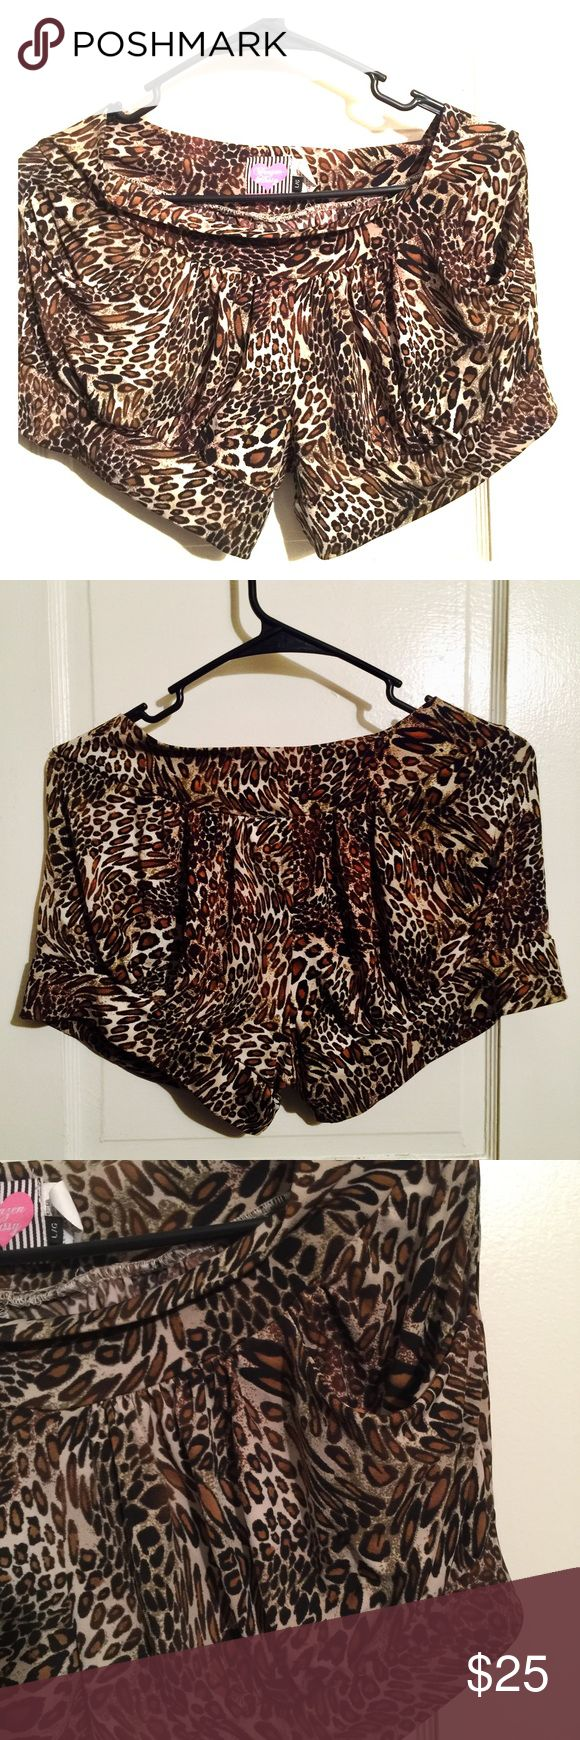 Boutique Cheetah Silky Shorts Silky cheetah shorts with pockets. Makes your butt look amazing!!!!! Purchased at a boutique in Toronto. Brazen Hussy Shorts